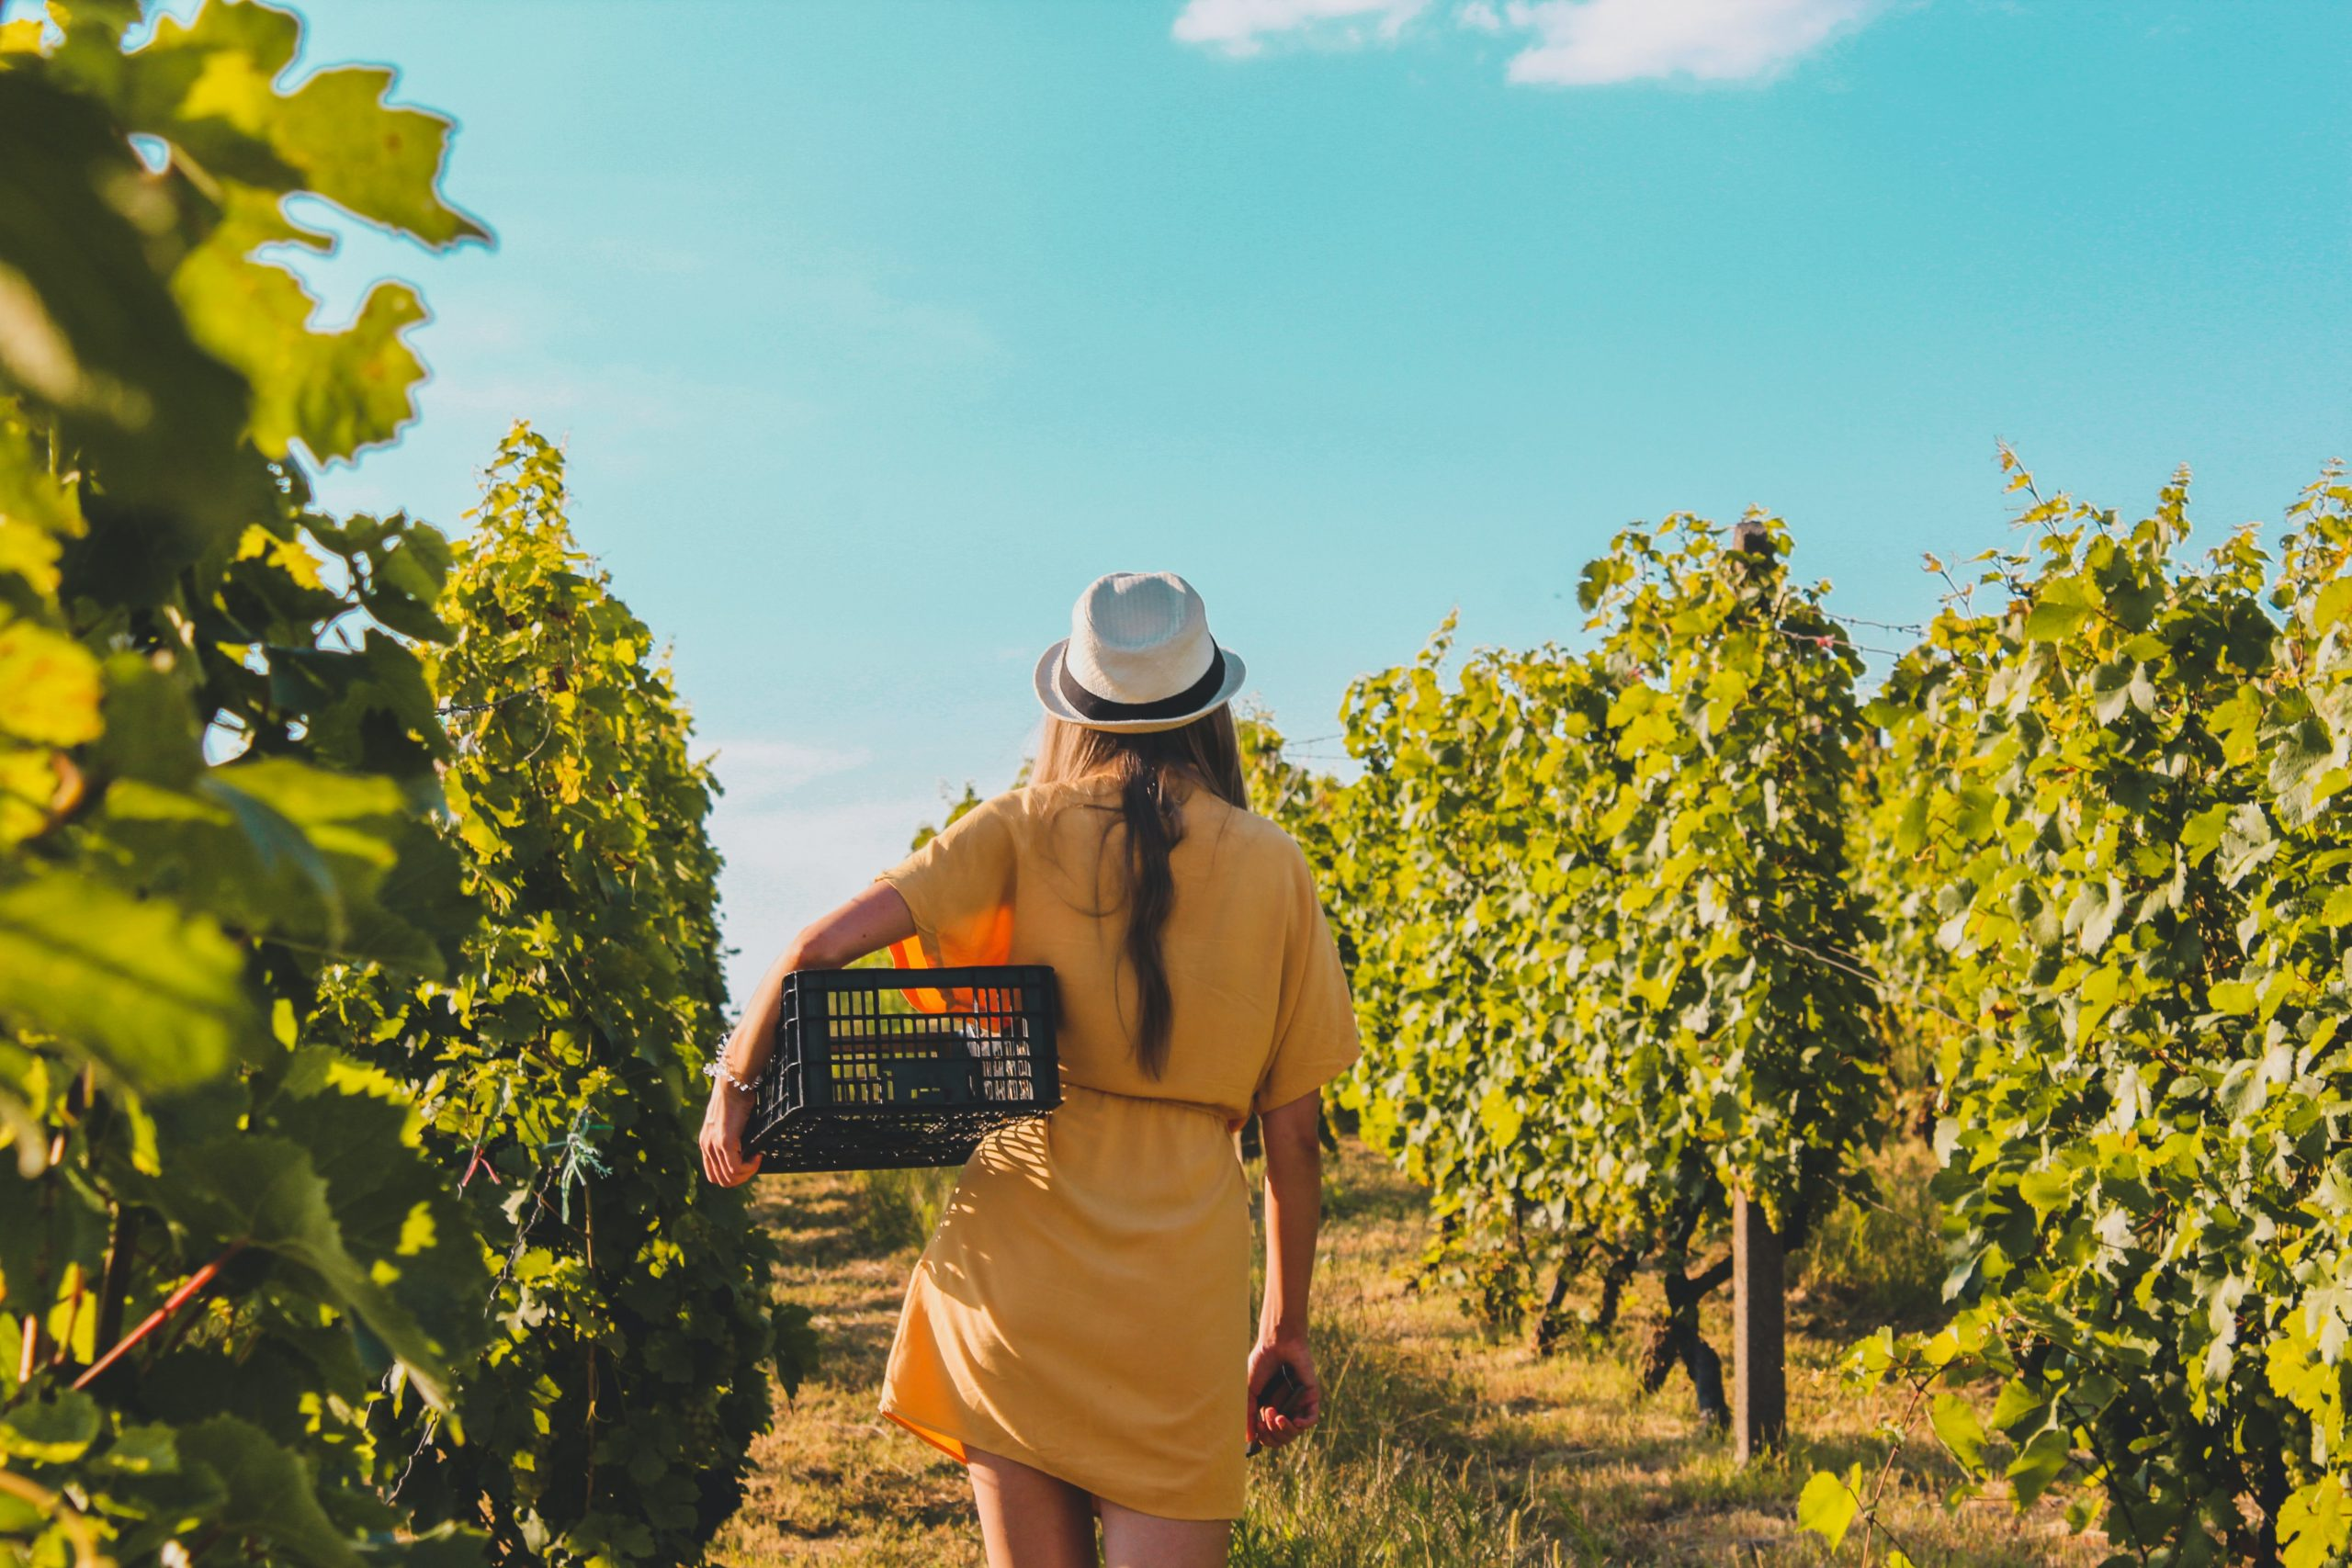 Young woman walking through fruit trees with a basket